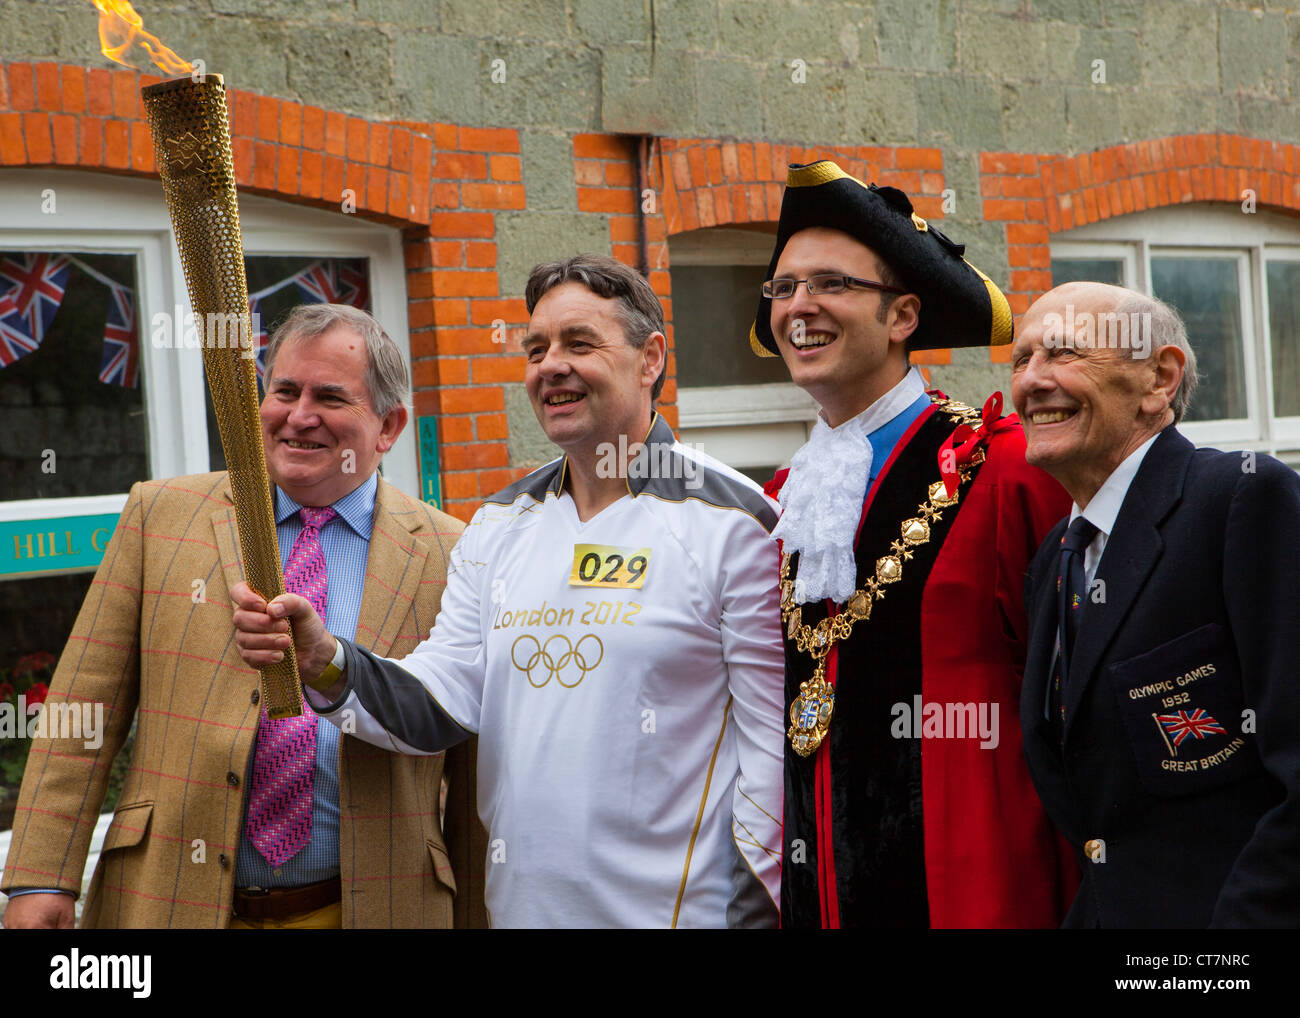 Olympic Torch Relay comes to Shaftesbury Dorset on 12th July 2012. - Stock Image